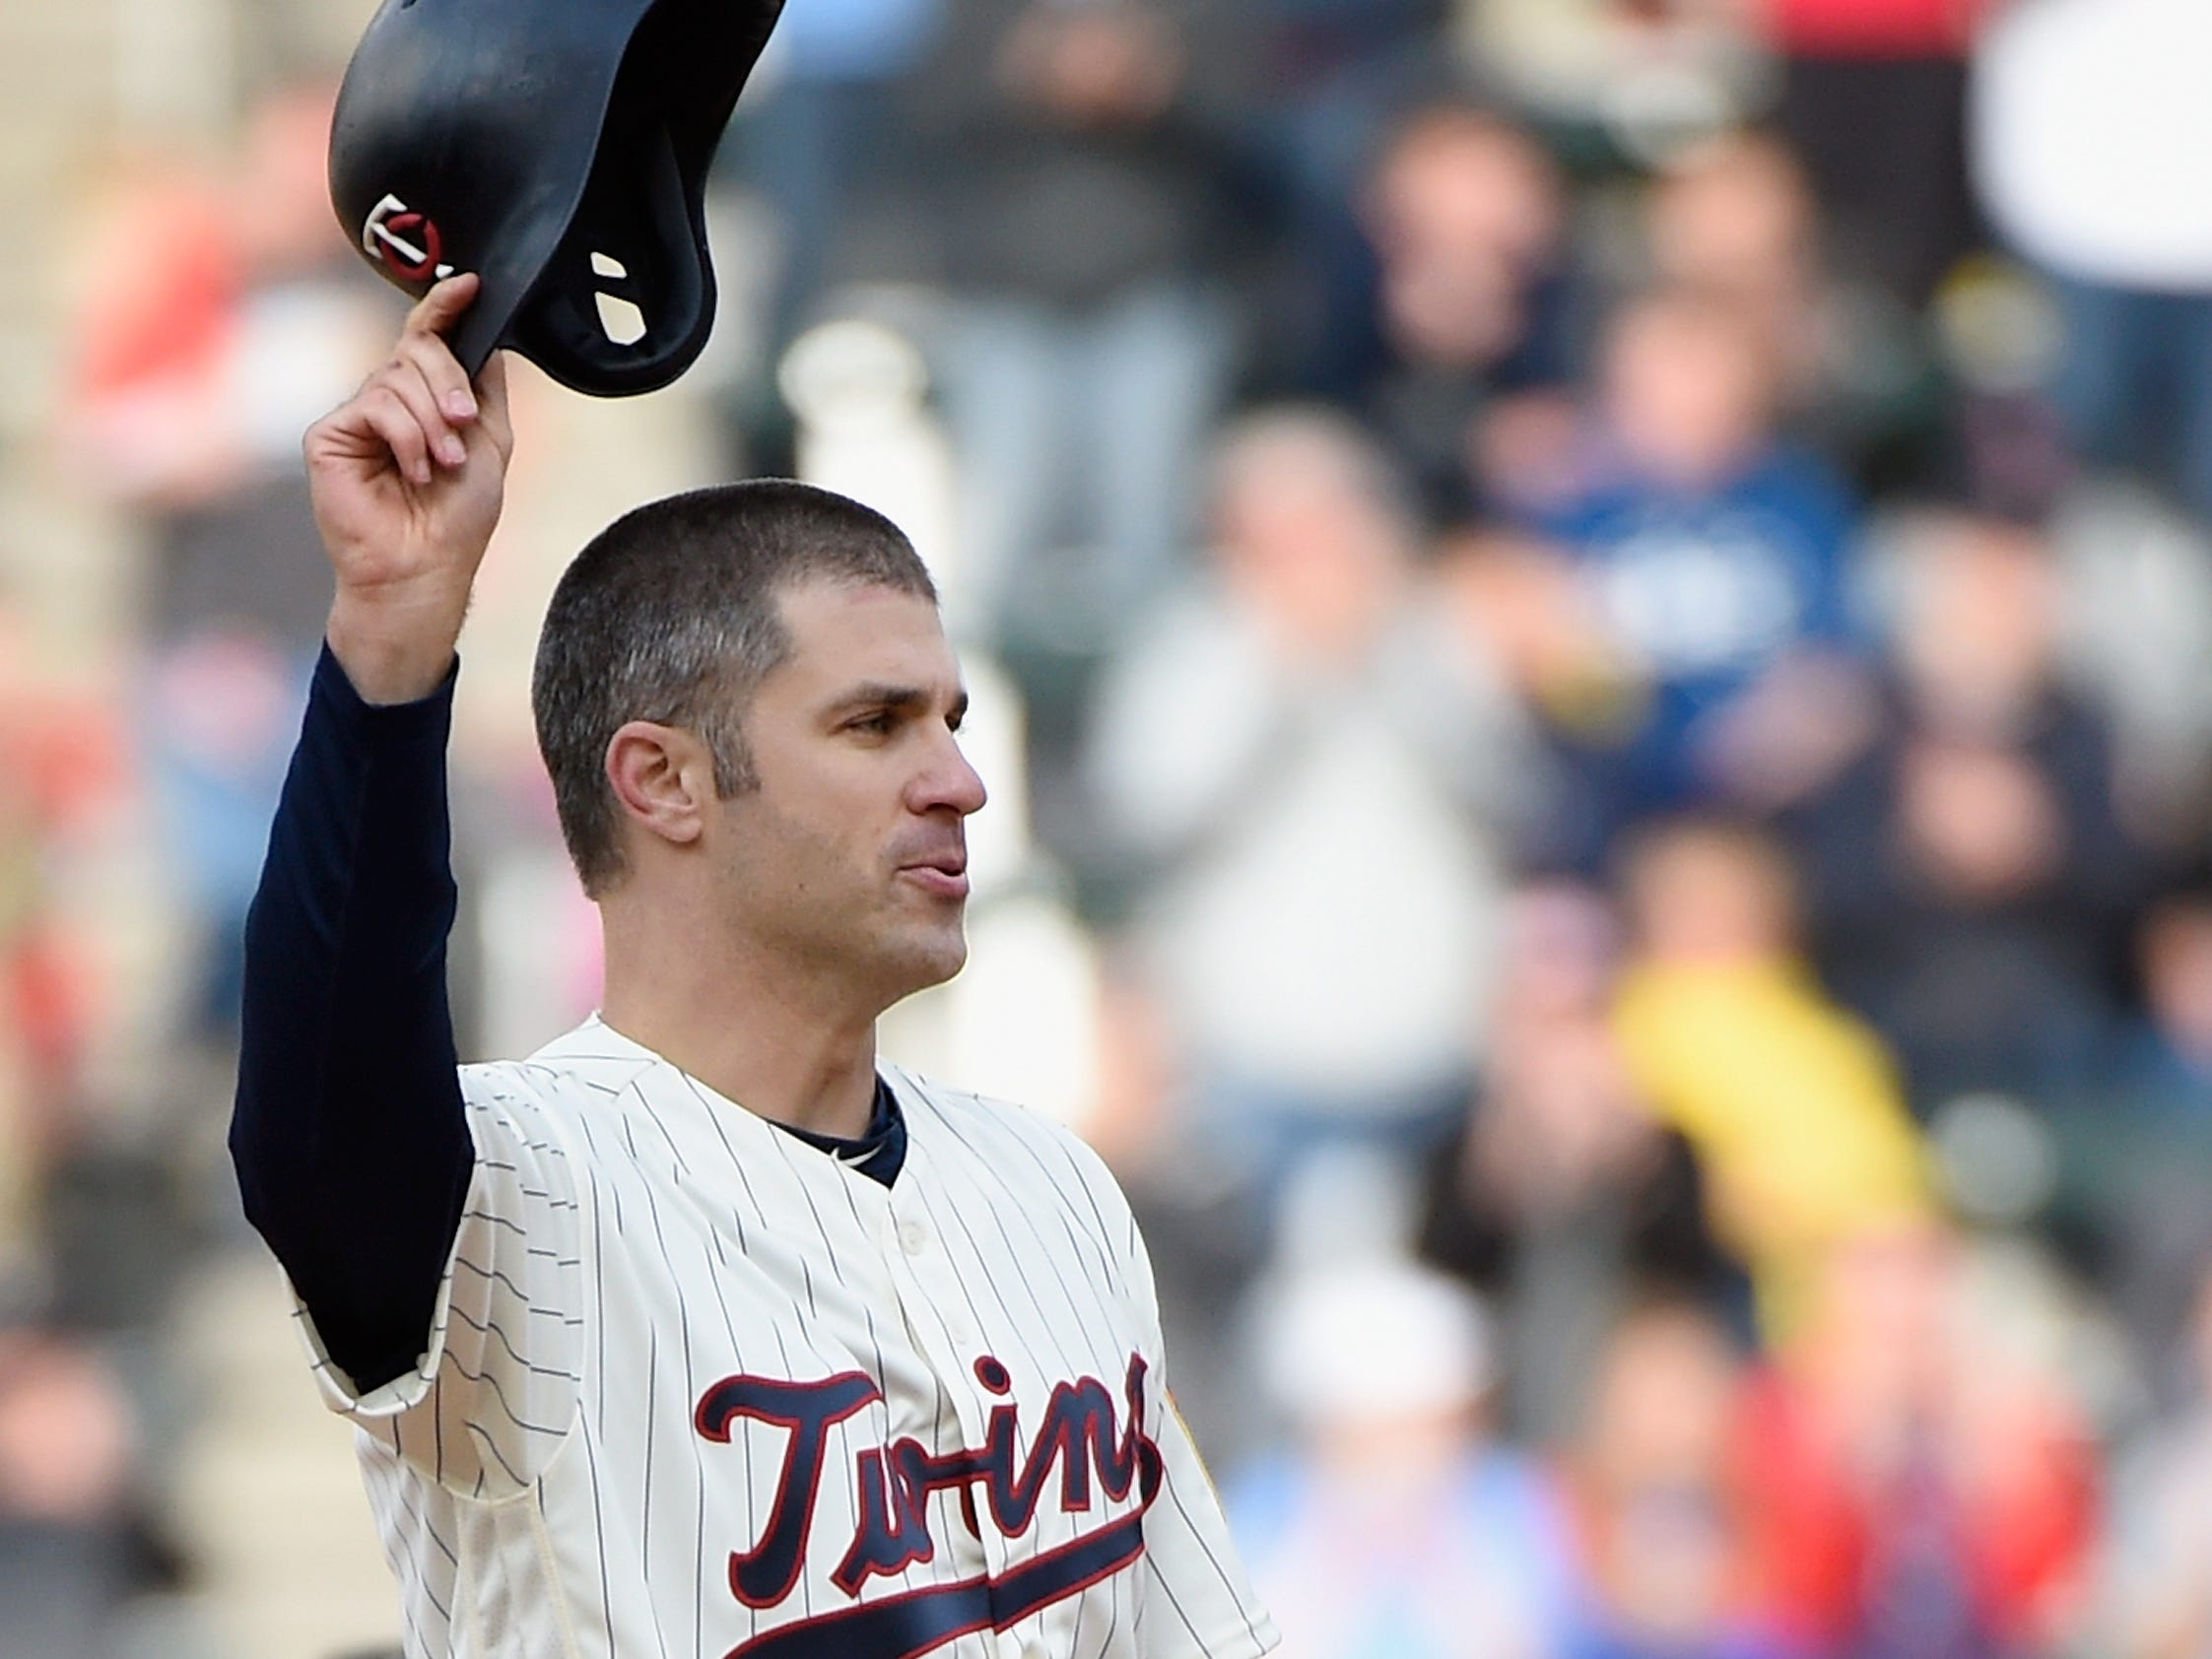 44. Joe Mauer, 1B, 36: His $184 million contract with his hometown Twins has finally come to an end, and signs point to retirement before he signs with another ballclub. Prediction: Retirement. UPDATED: Retirement.